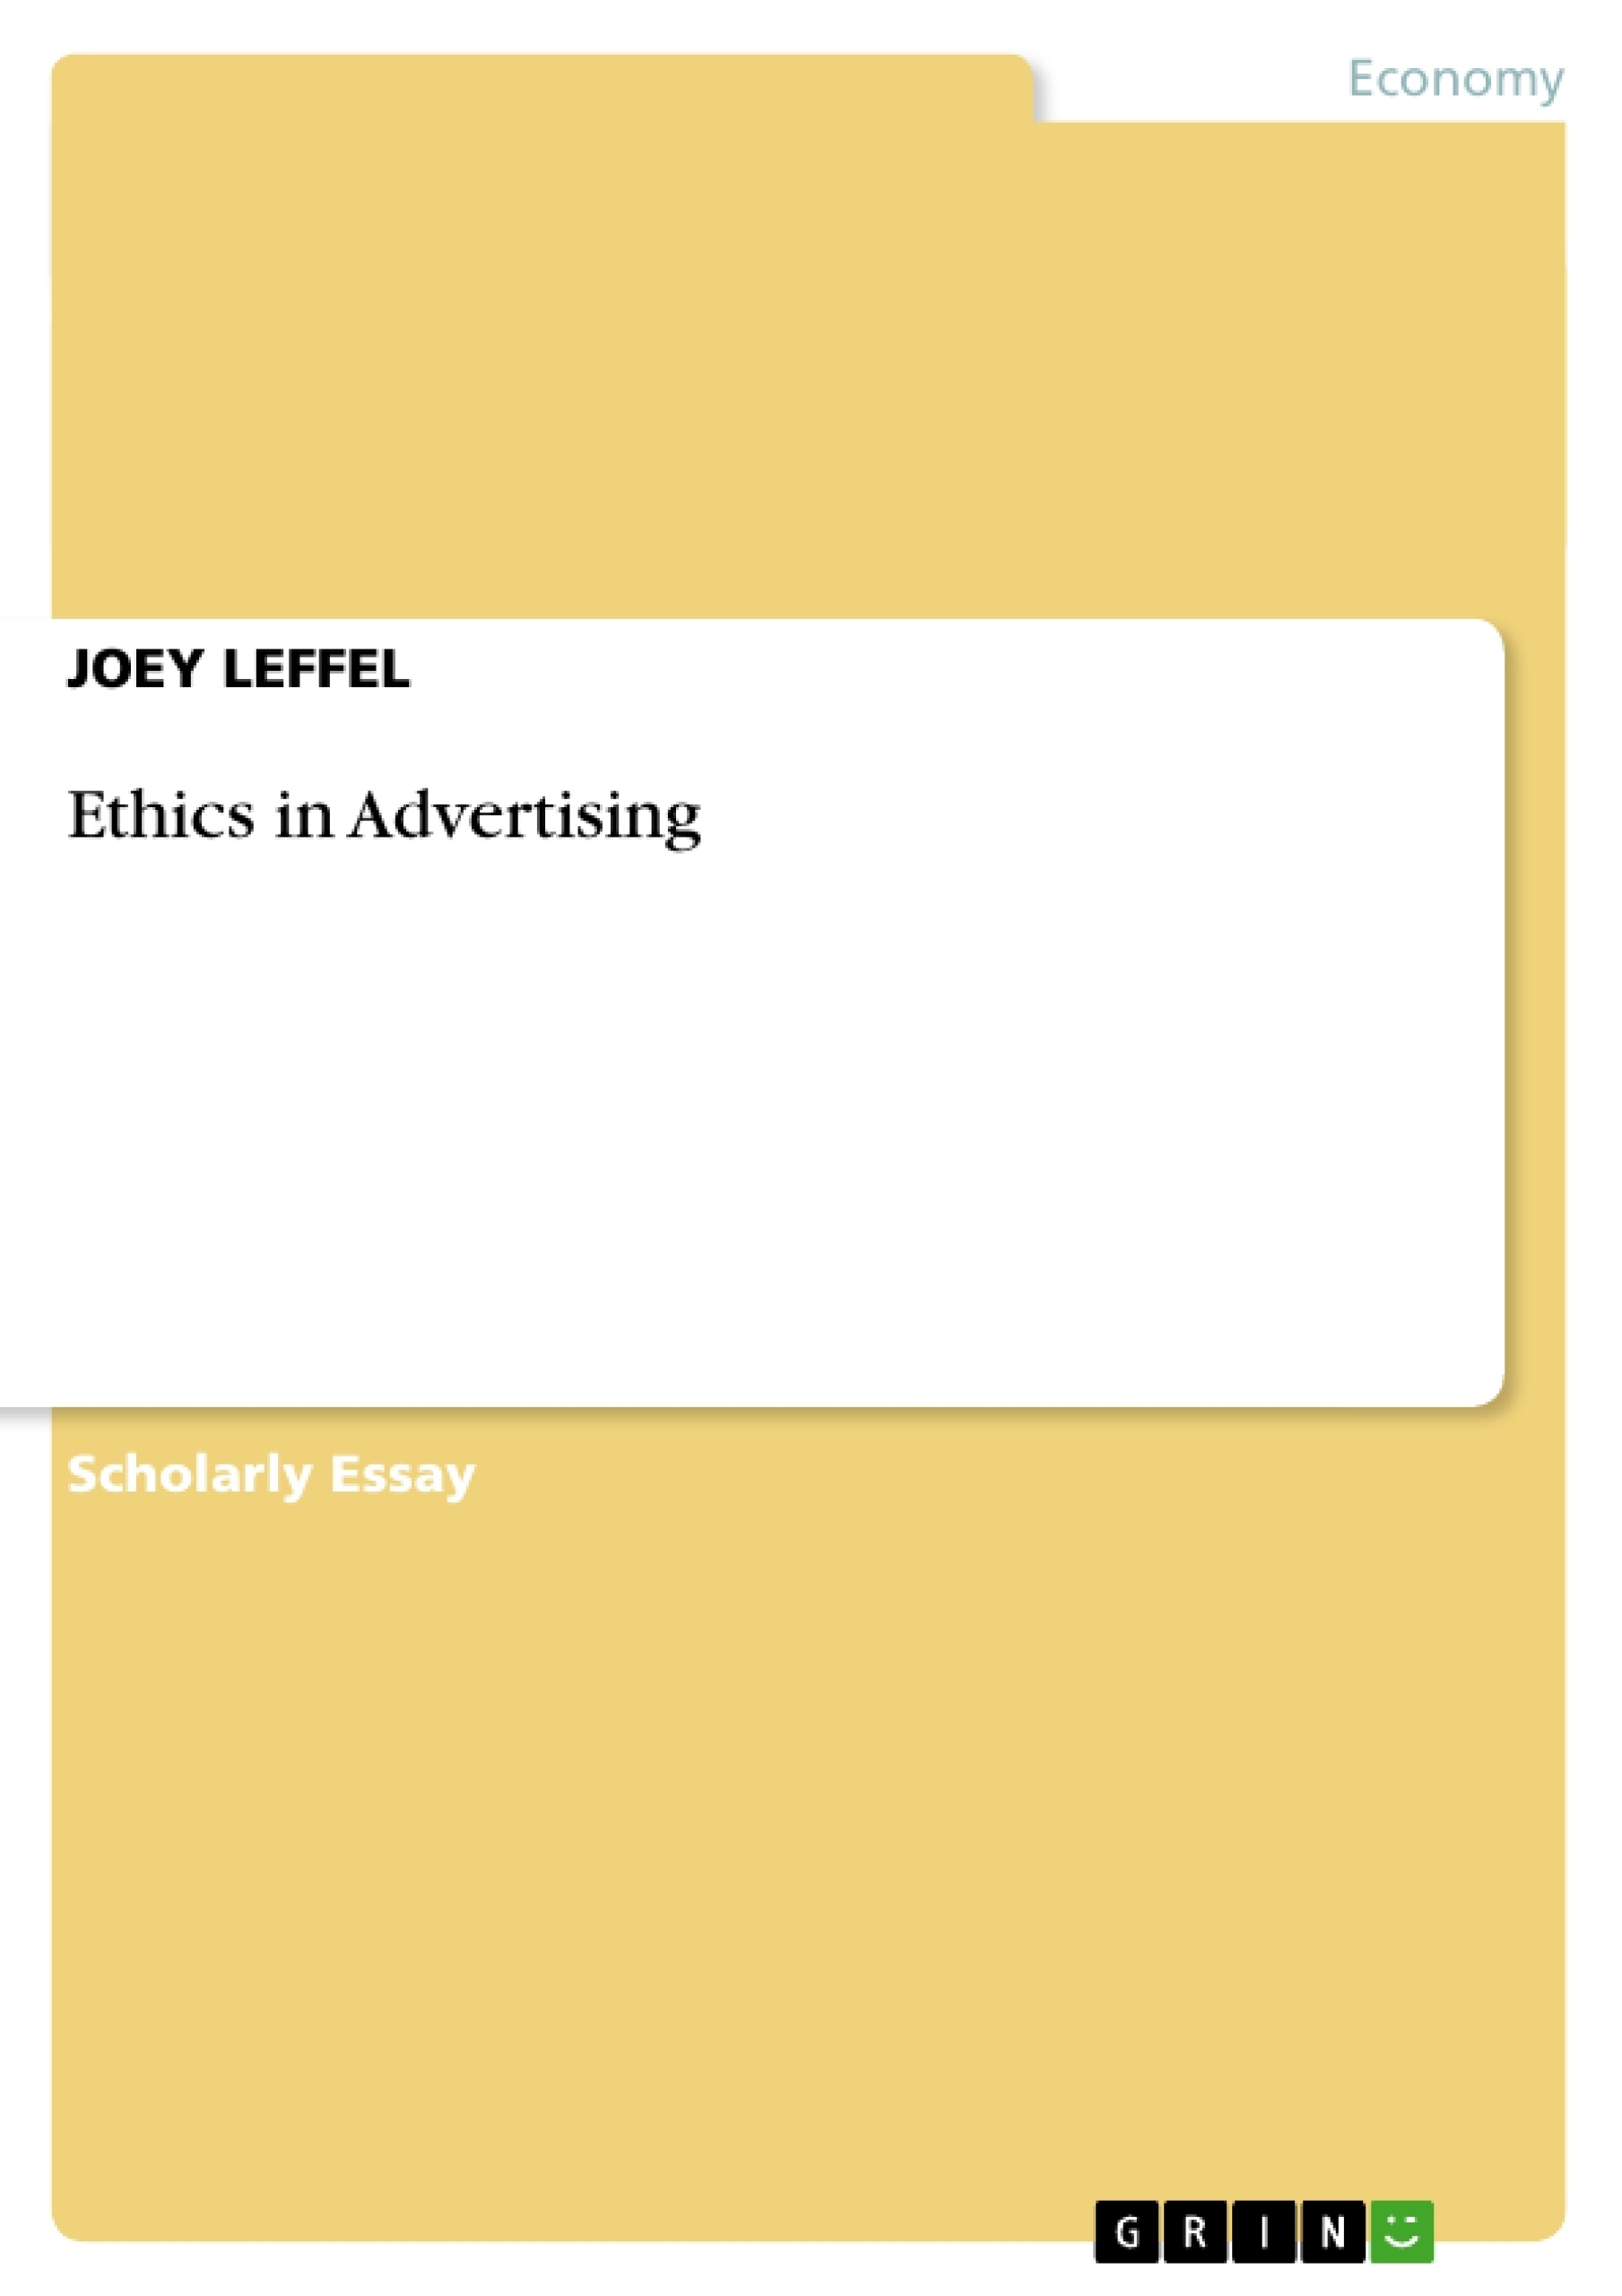 Title: Ethics in Advertising